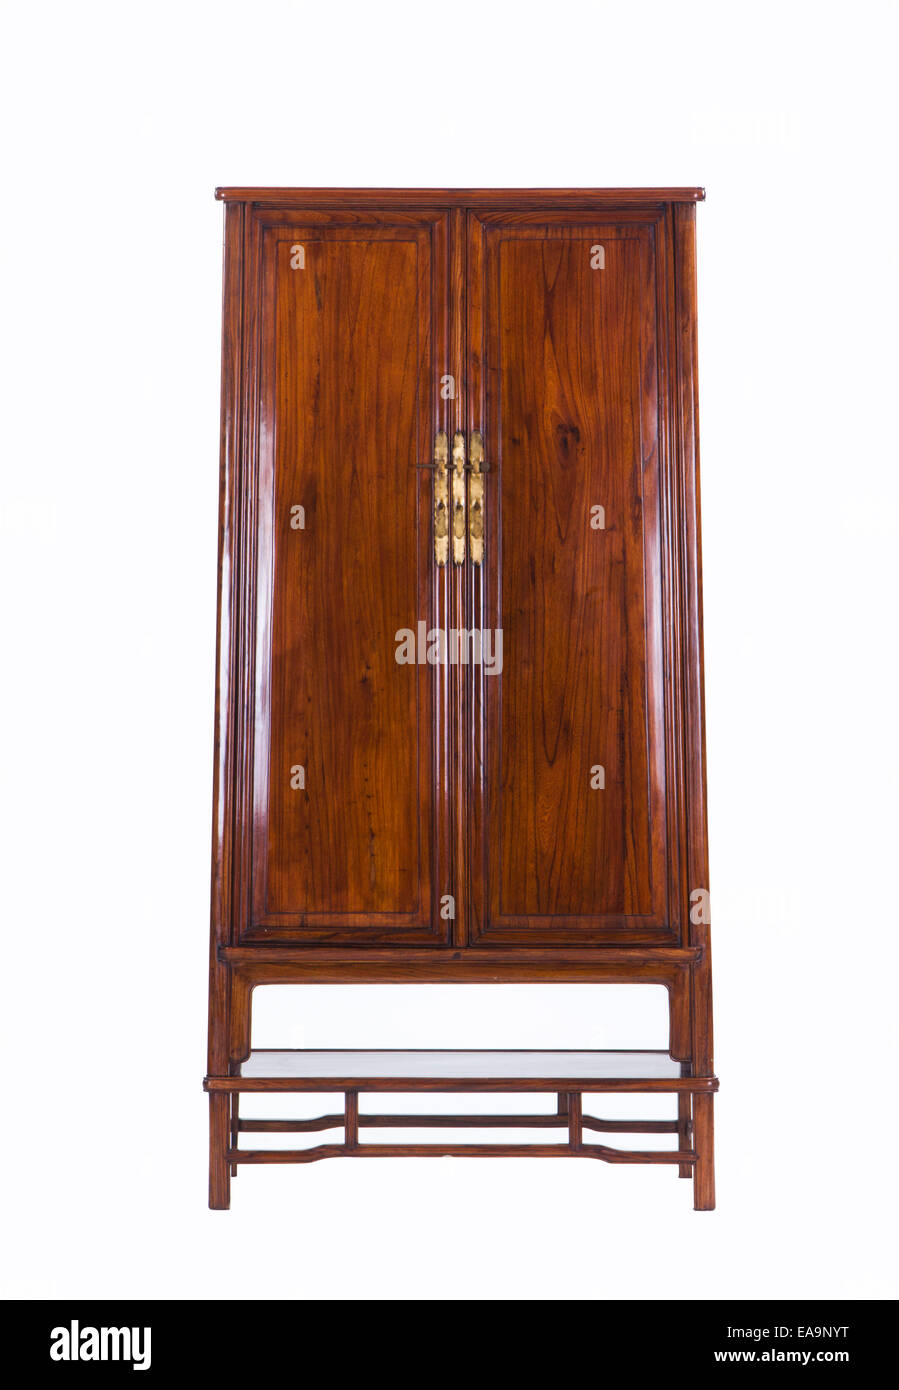 Antique Chinese cabinets - Antique Chinese Cabinets Stock Photo: 75202844 - Alamy